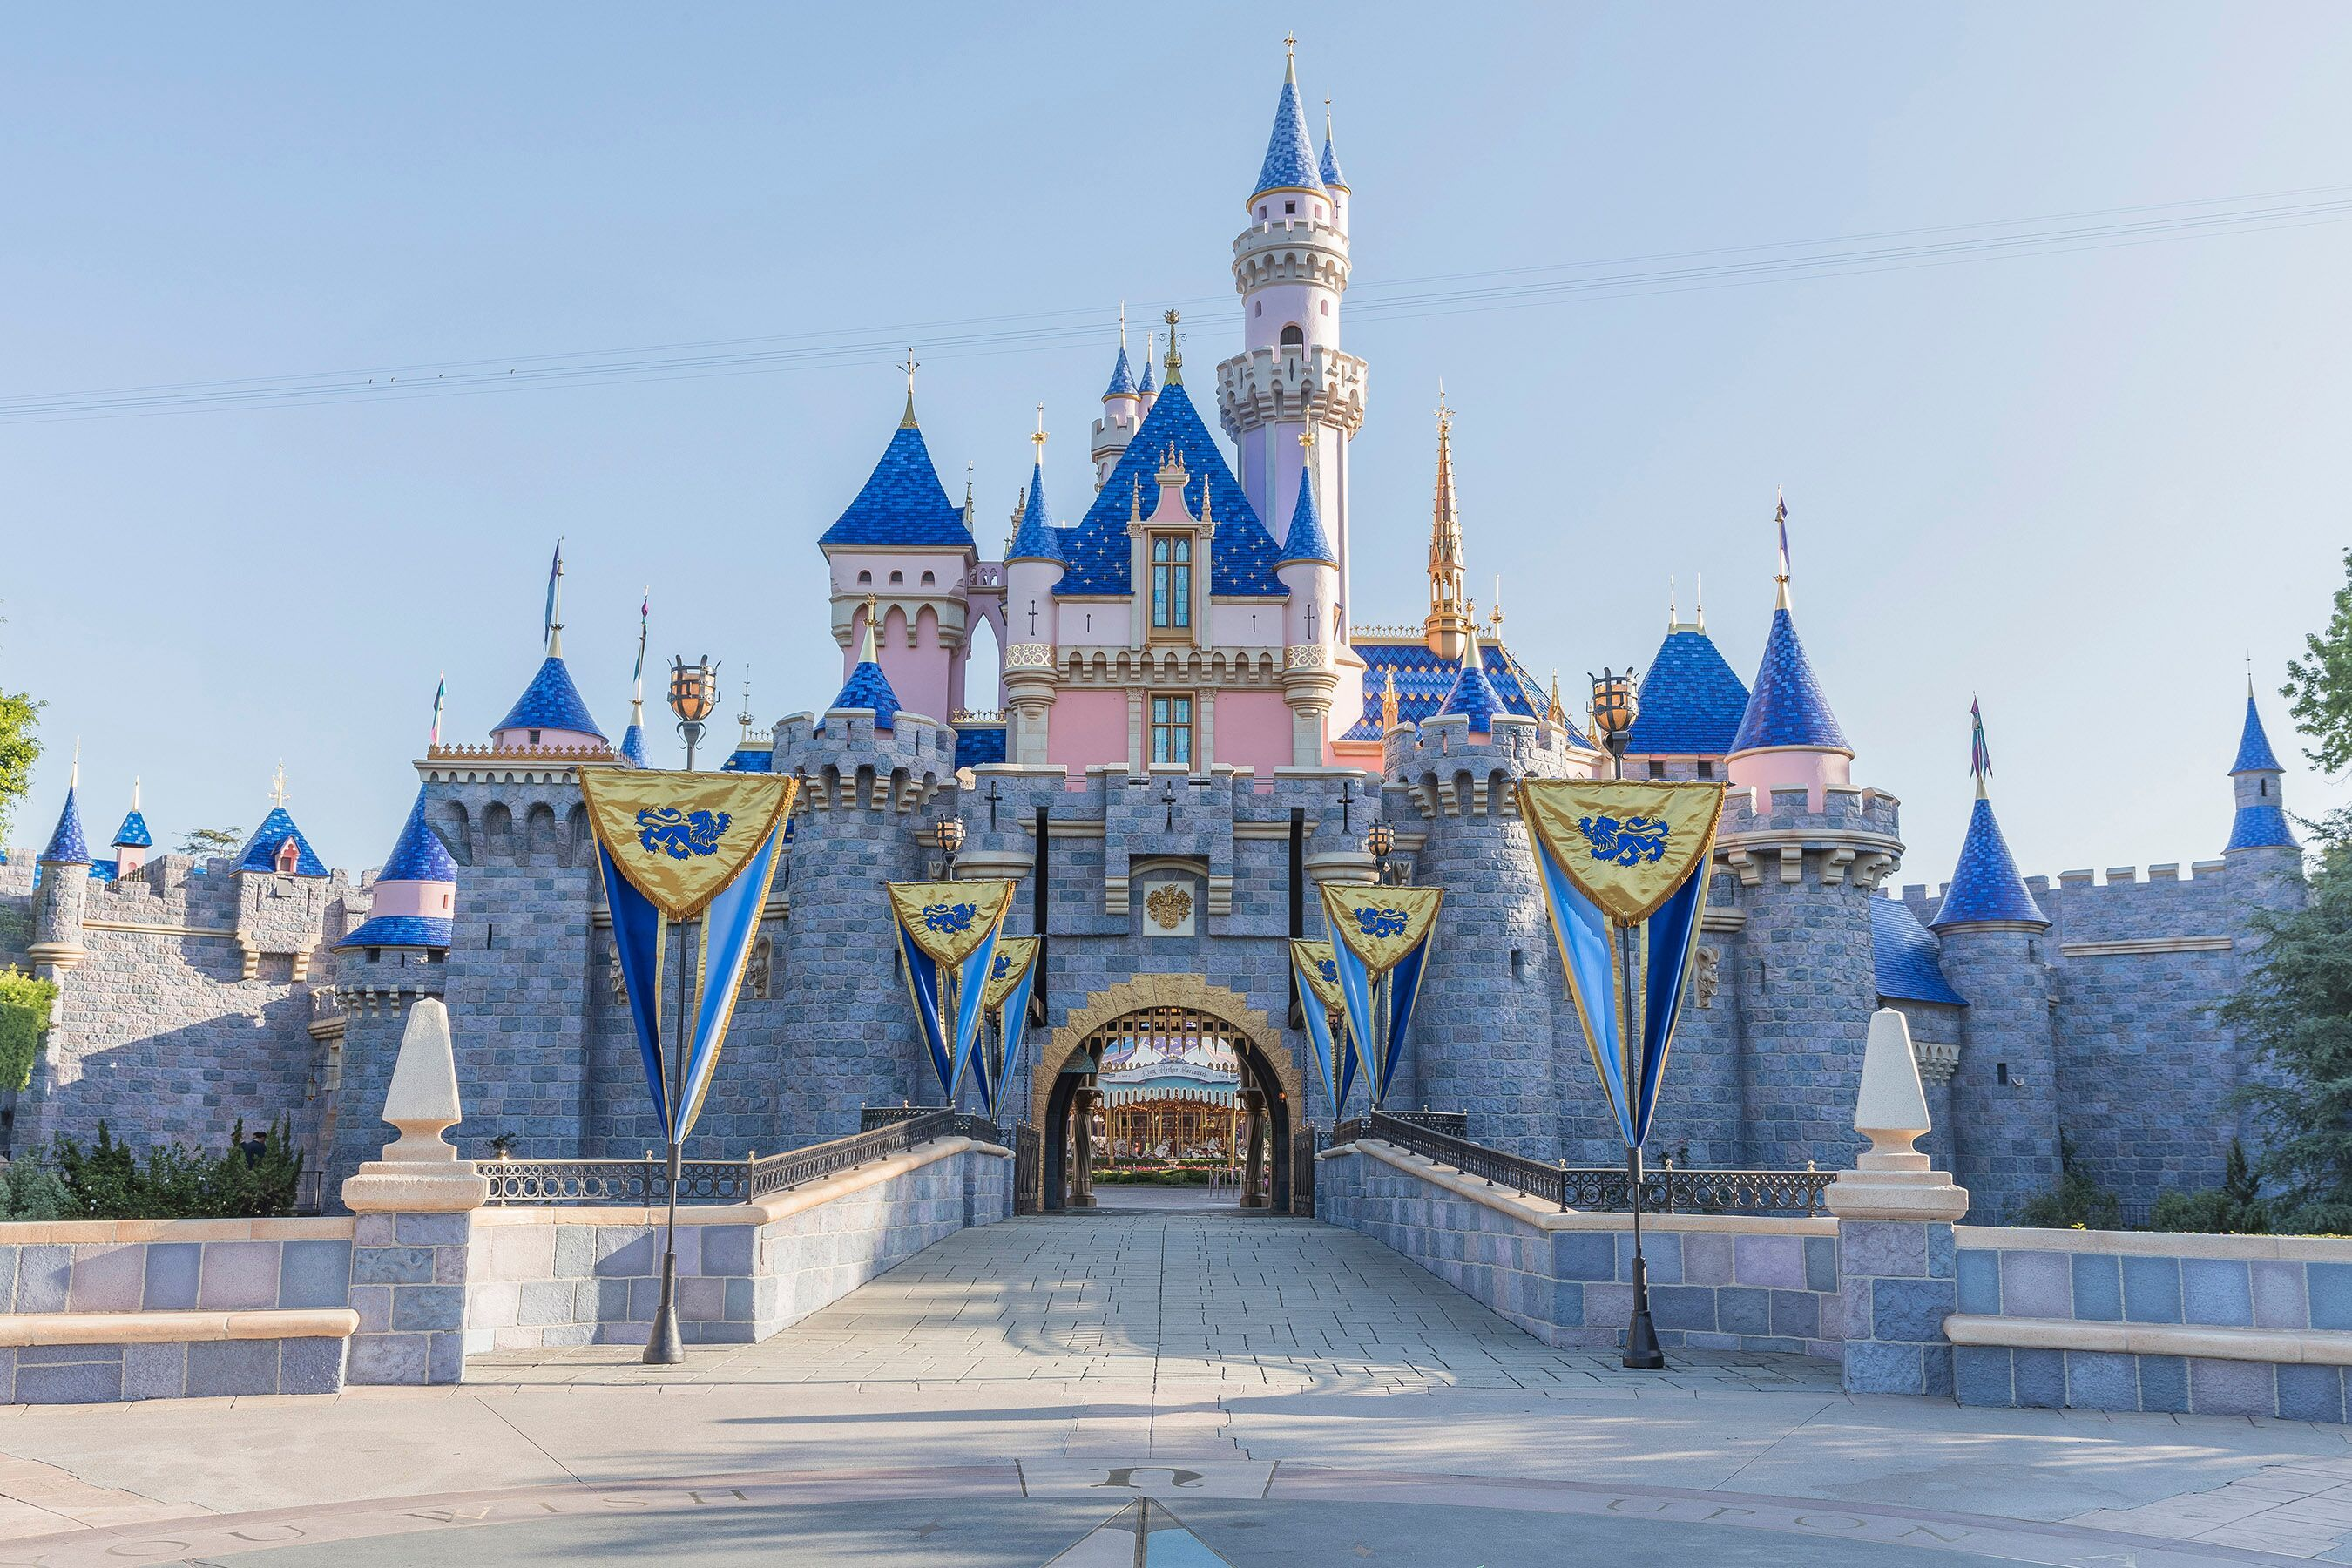 A more colorful Sleeping Beauty's Castle debuts at Disneland in spring 2019